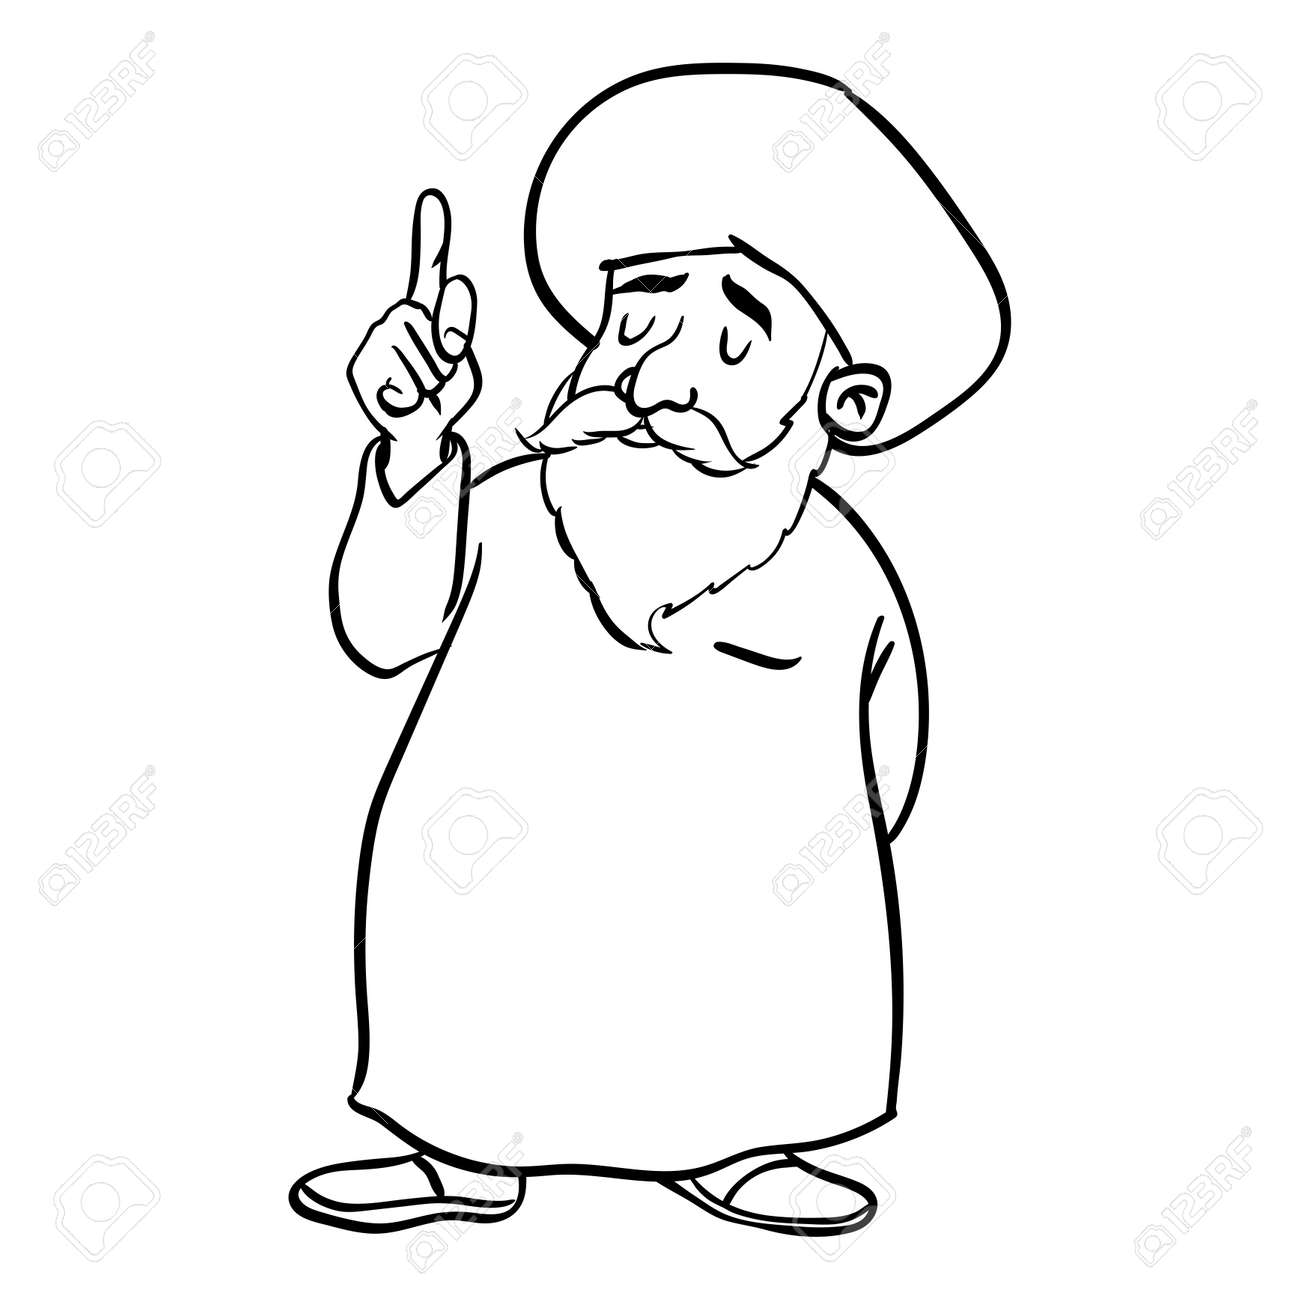 Hand Drawing Of Cartoon Muslim Old Man Standing Pointer Finger Up Isolated On White